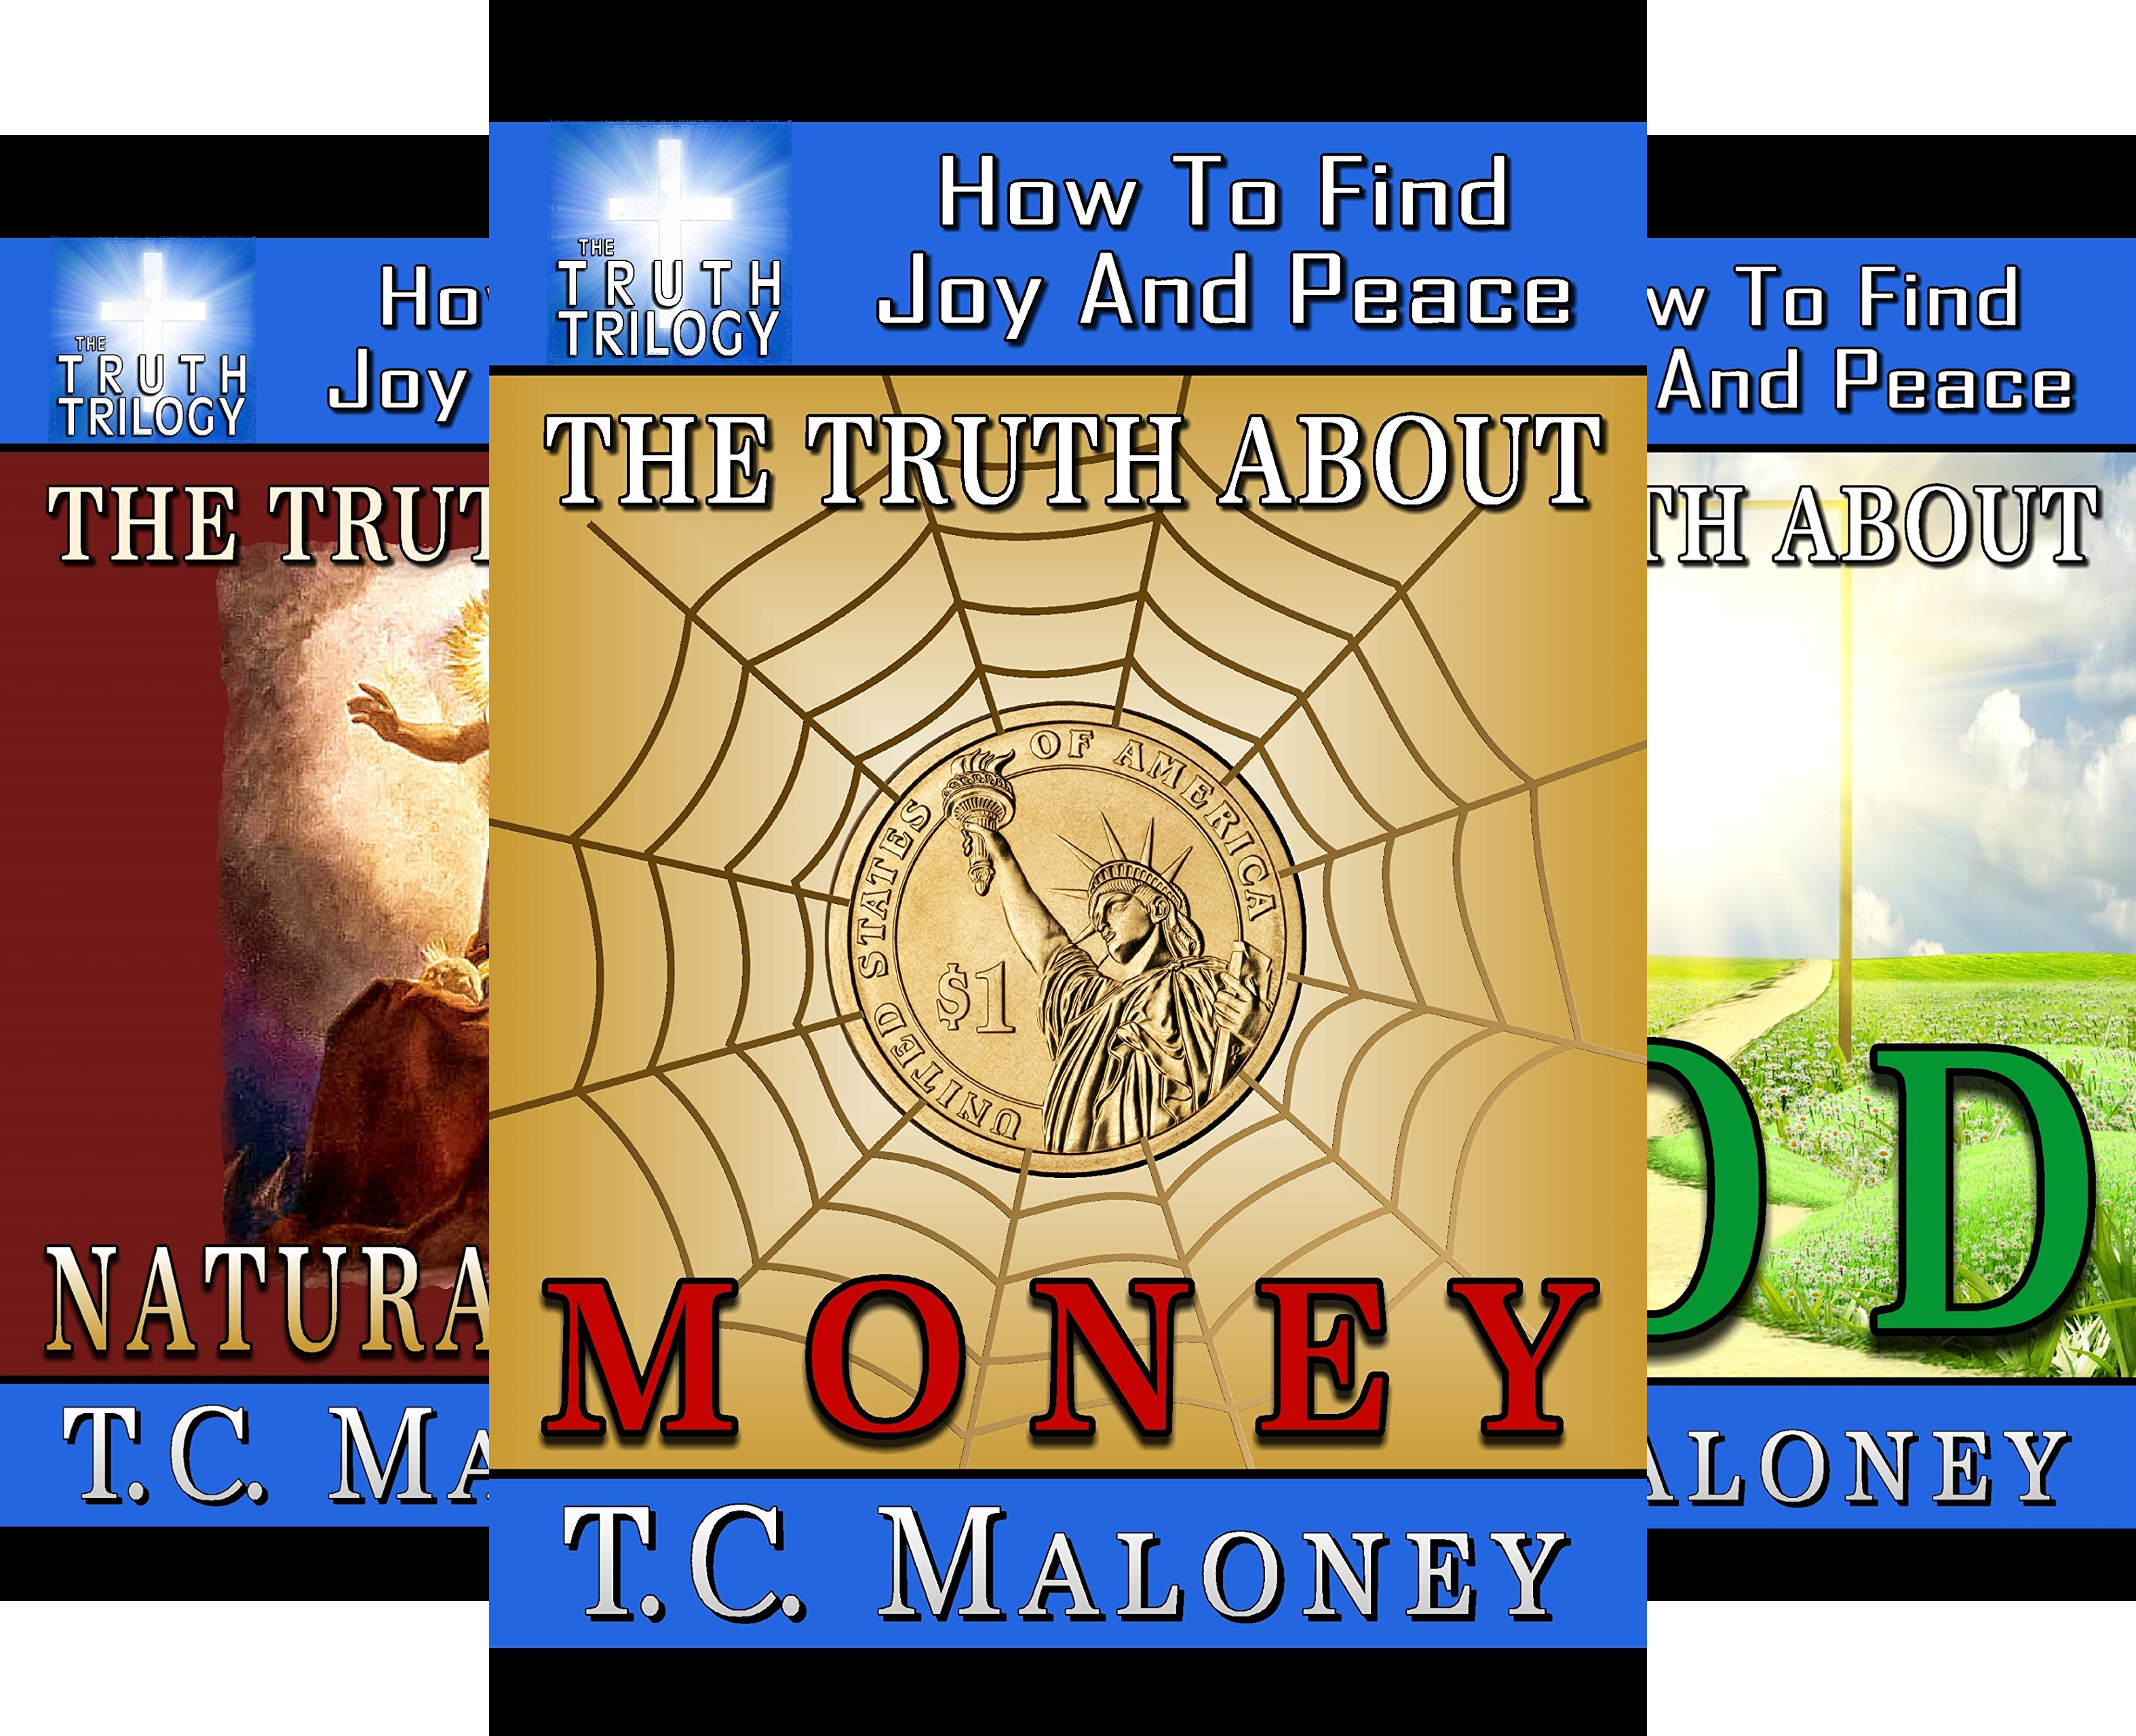 The Truth Trilogy (3 Book Series)